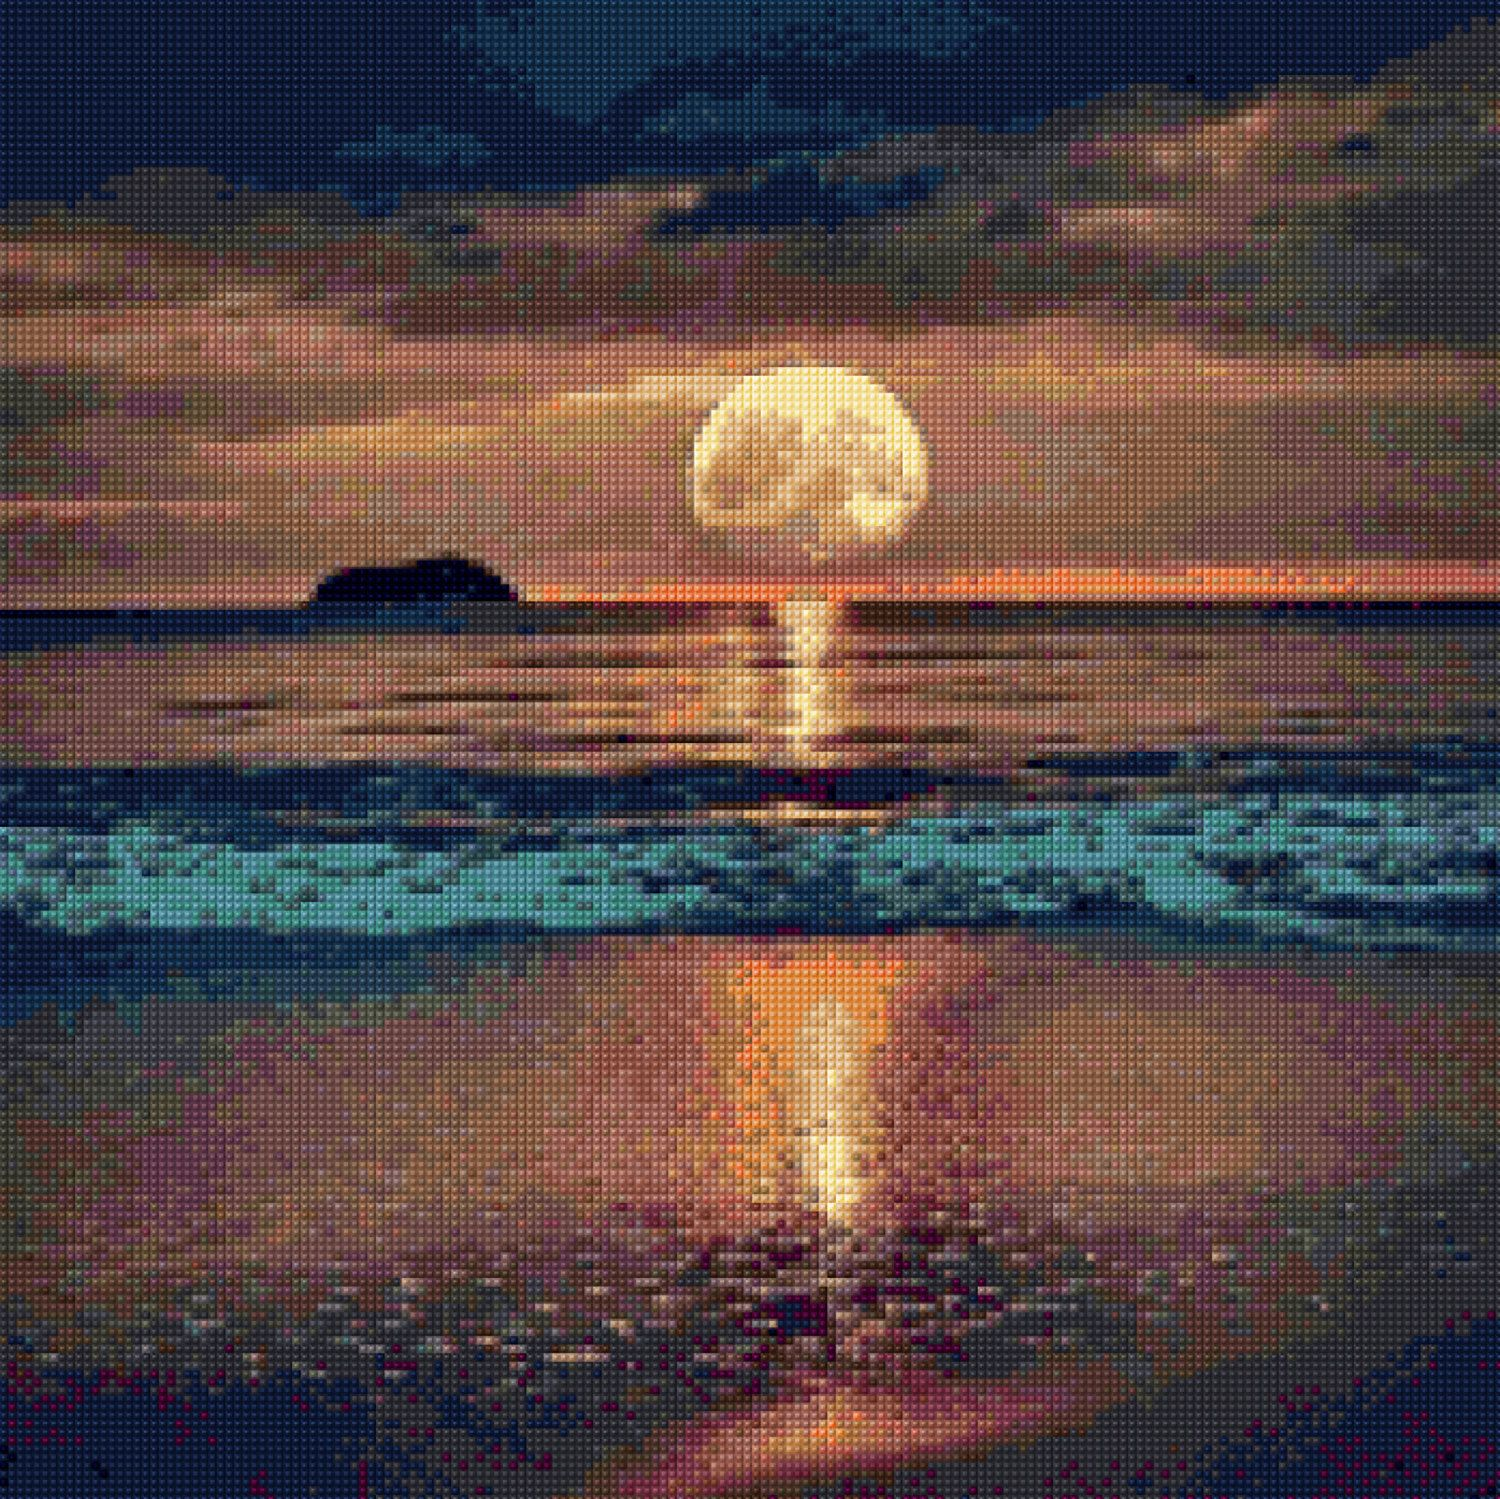 Moonlight Shore Cross Stitch Pattern Pdf Instant Download By Penumbracharts On Etsy